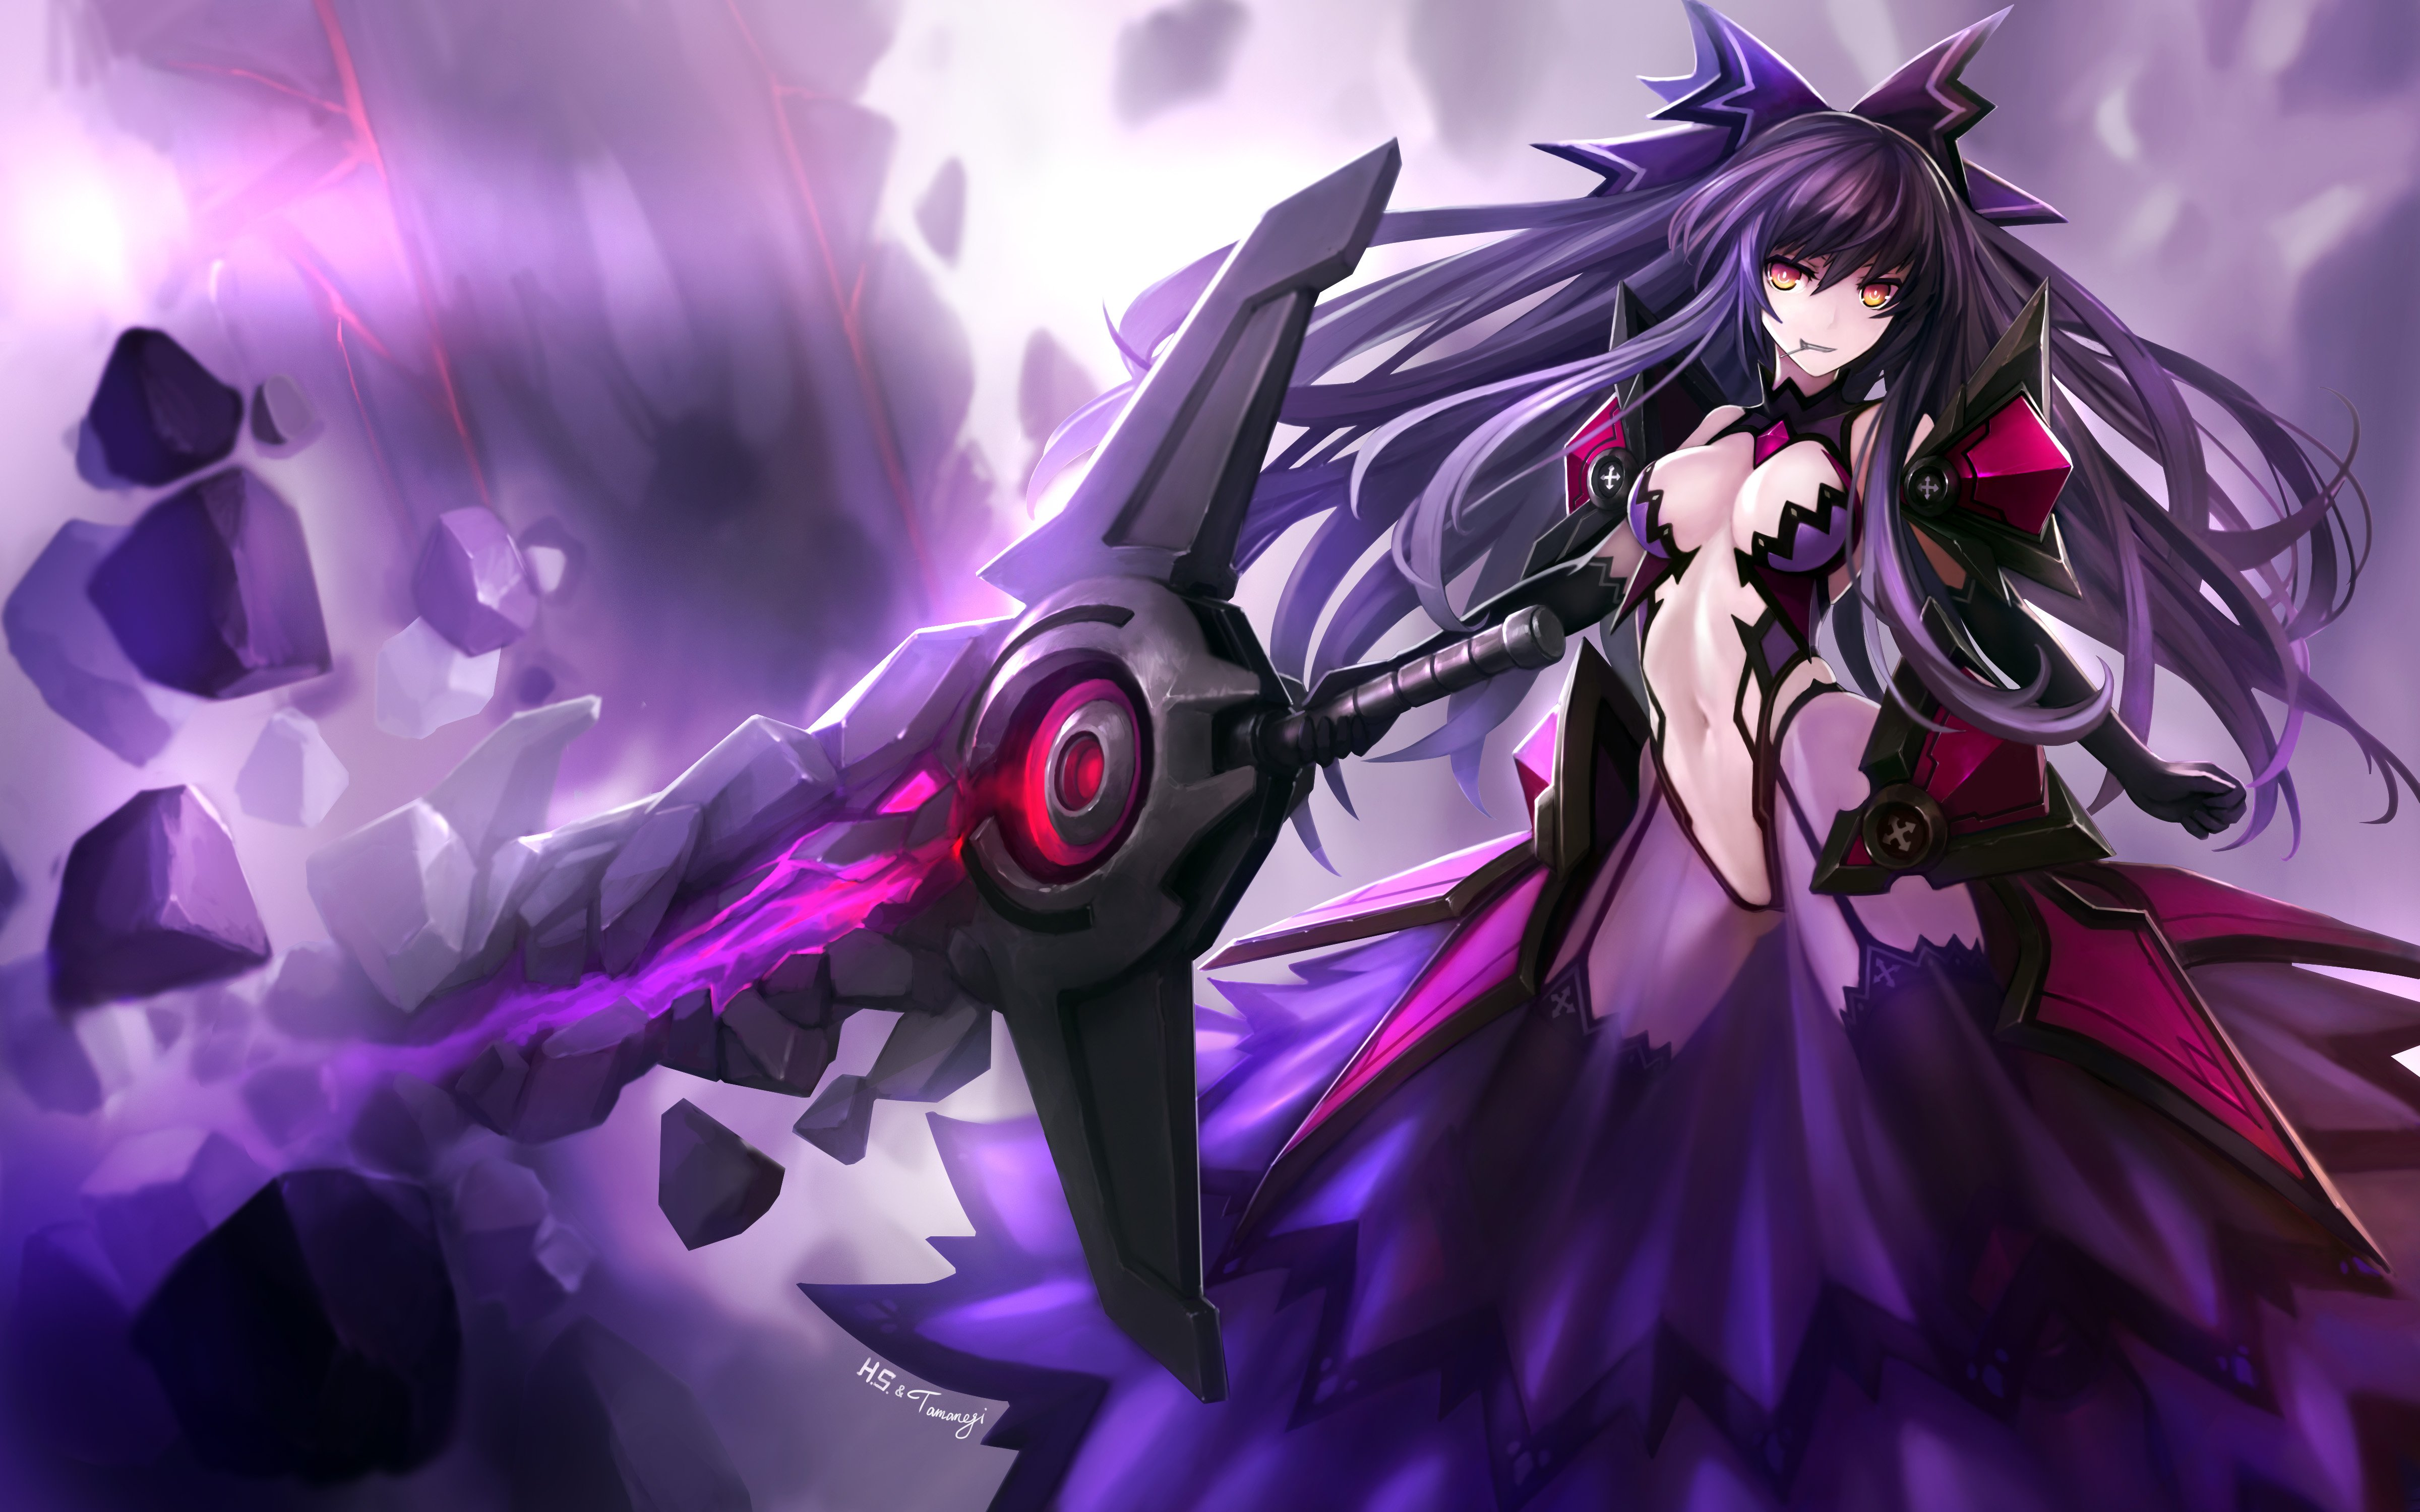 Armor breasts cleavage date a live elbow gloves gloves